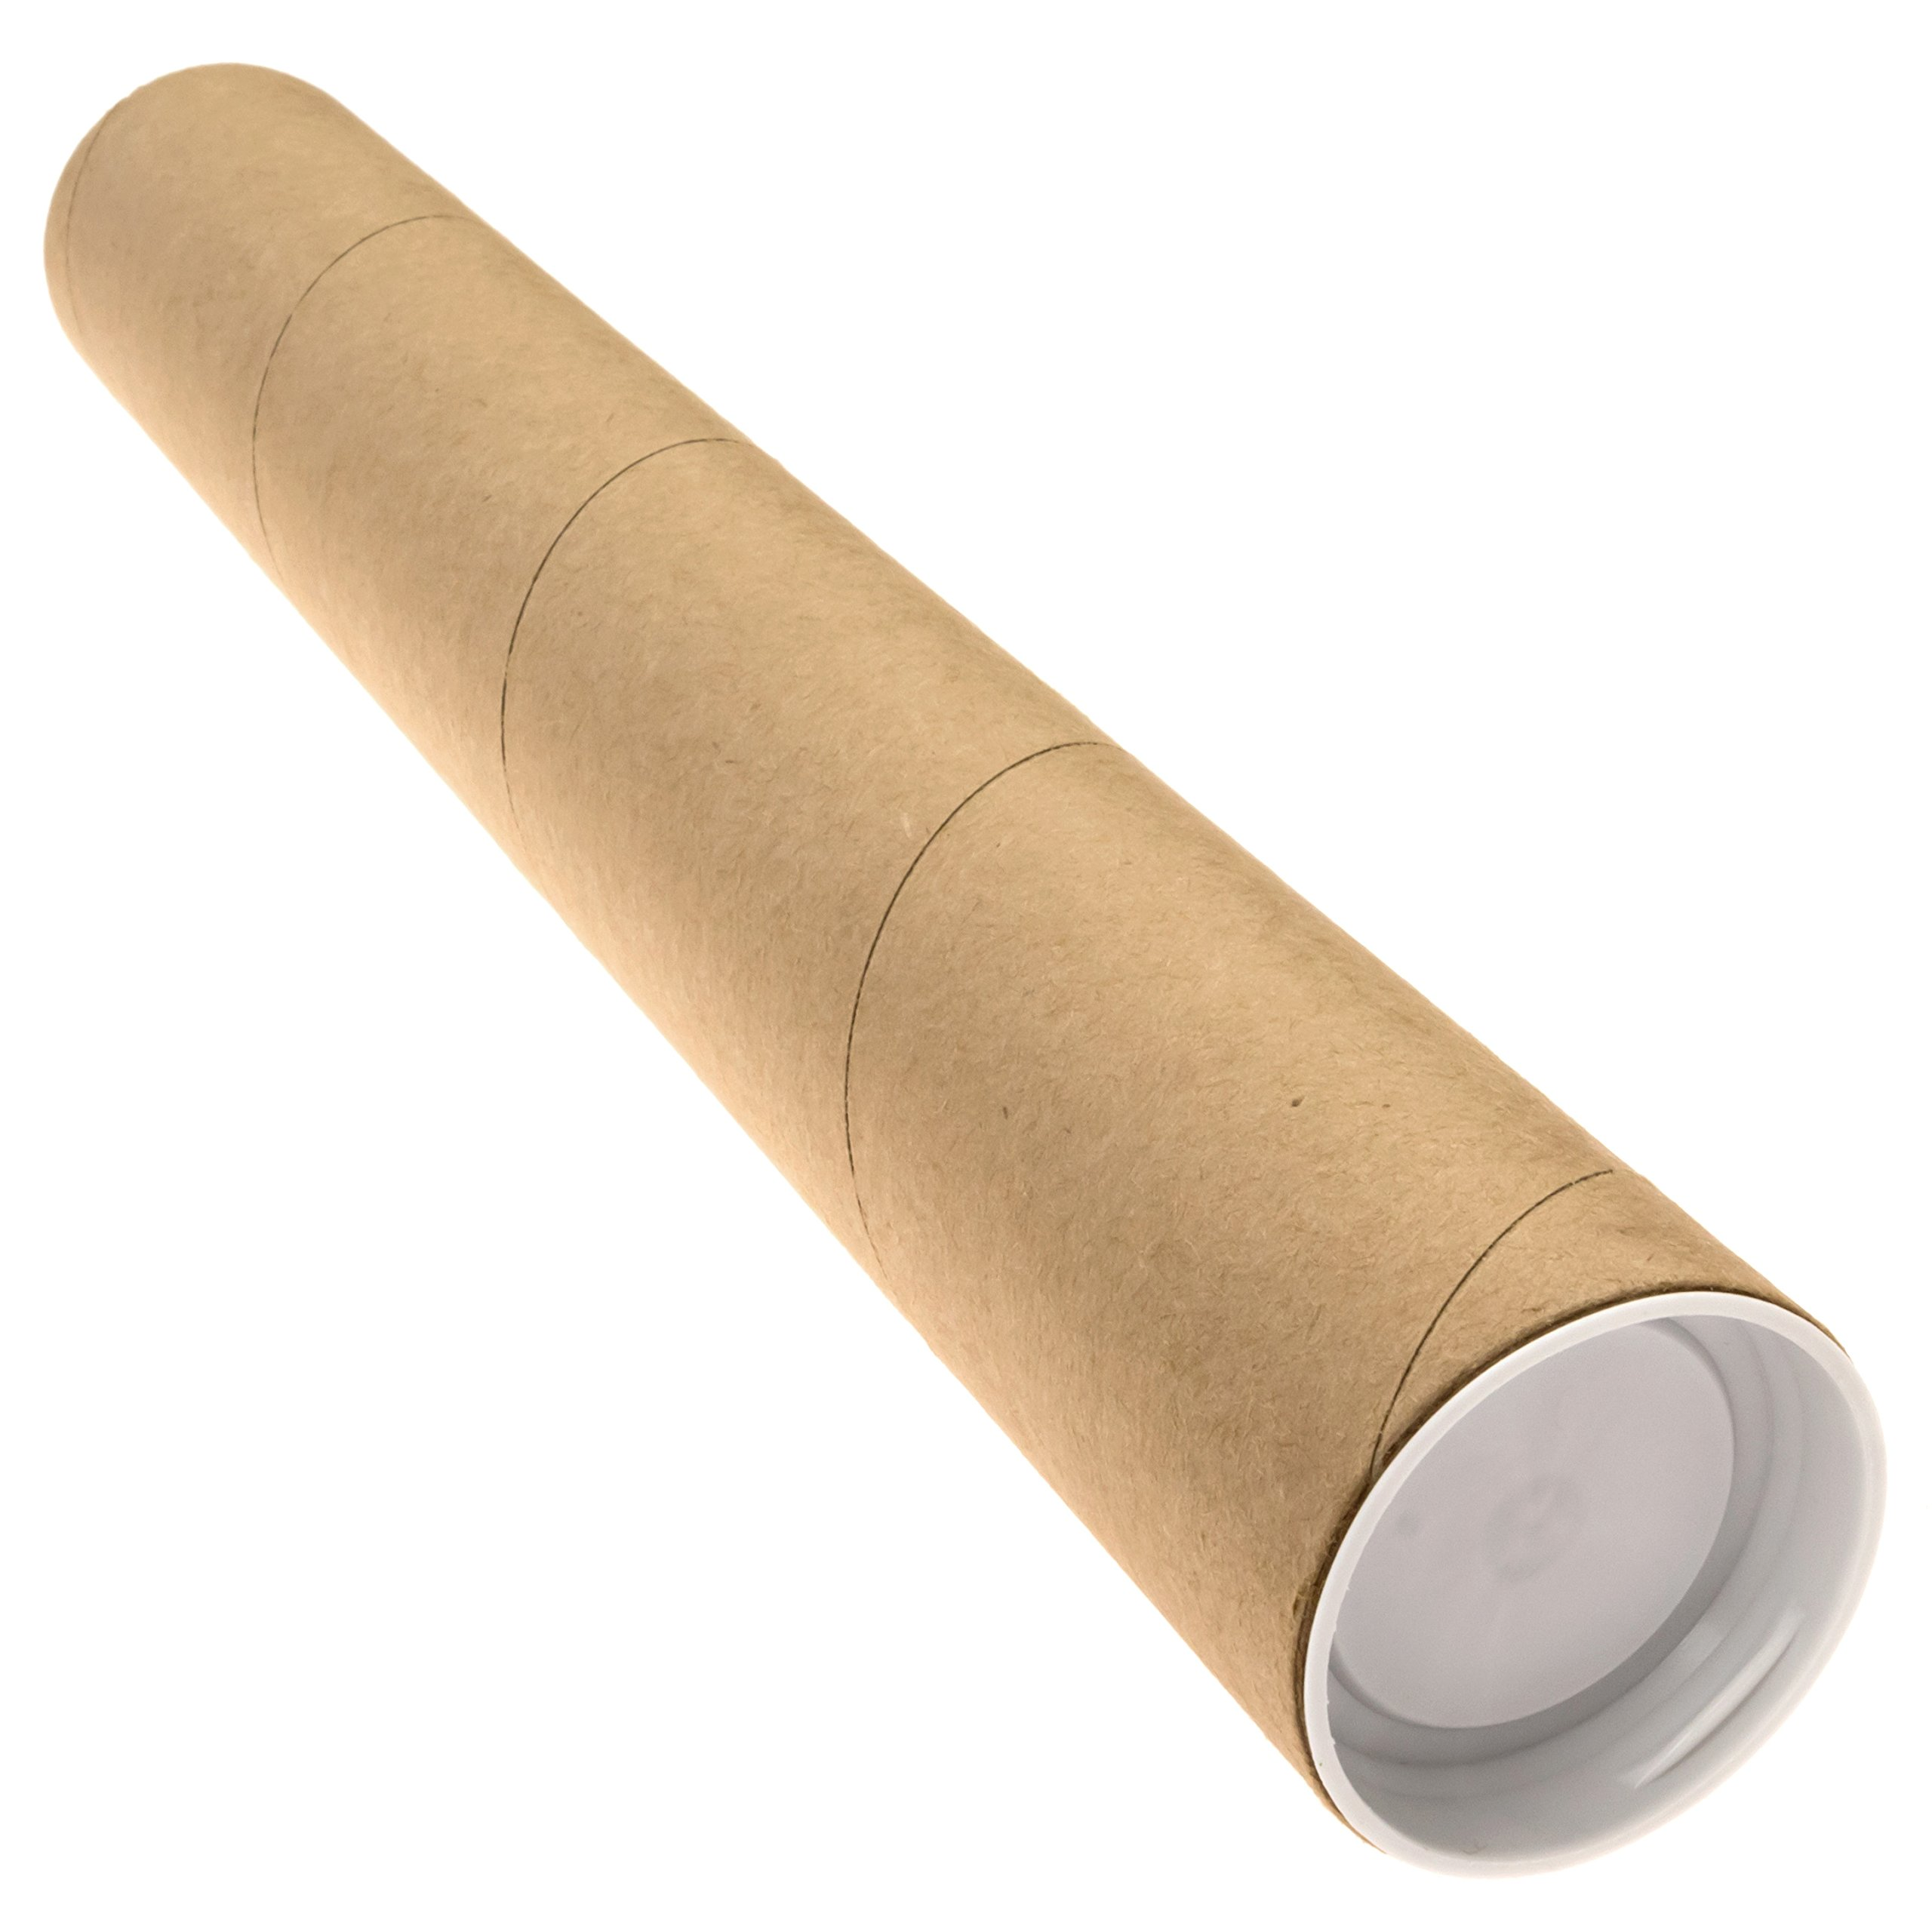 2'' x 18'' Cardboard Mailing Tube 12 Pack with Caps by Precision Cardboard Tubes